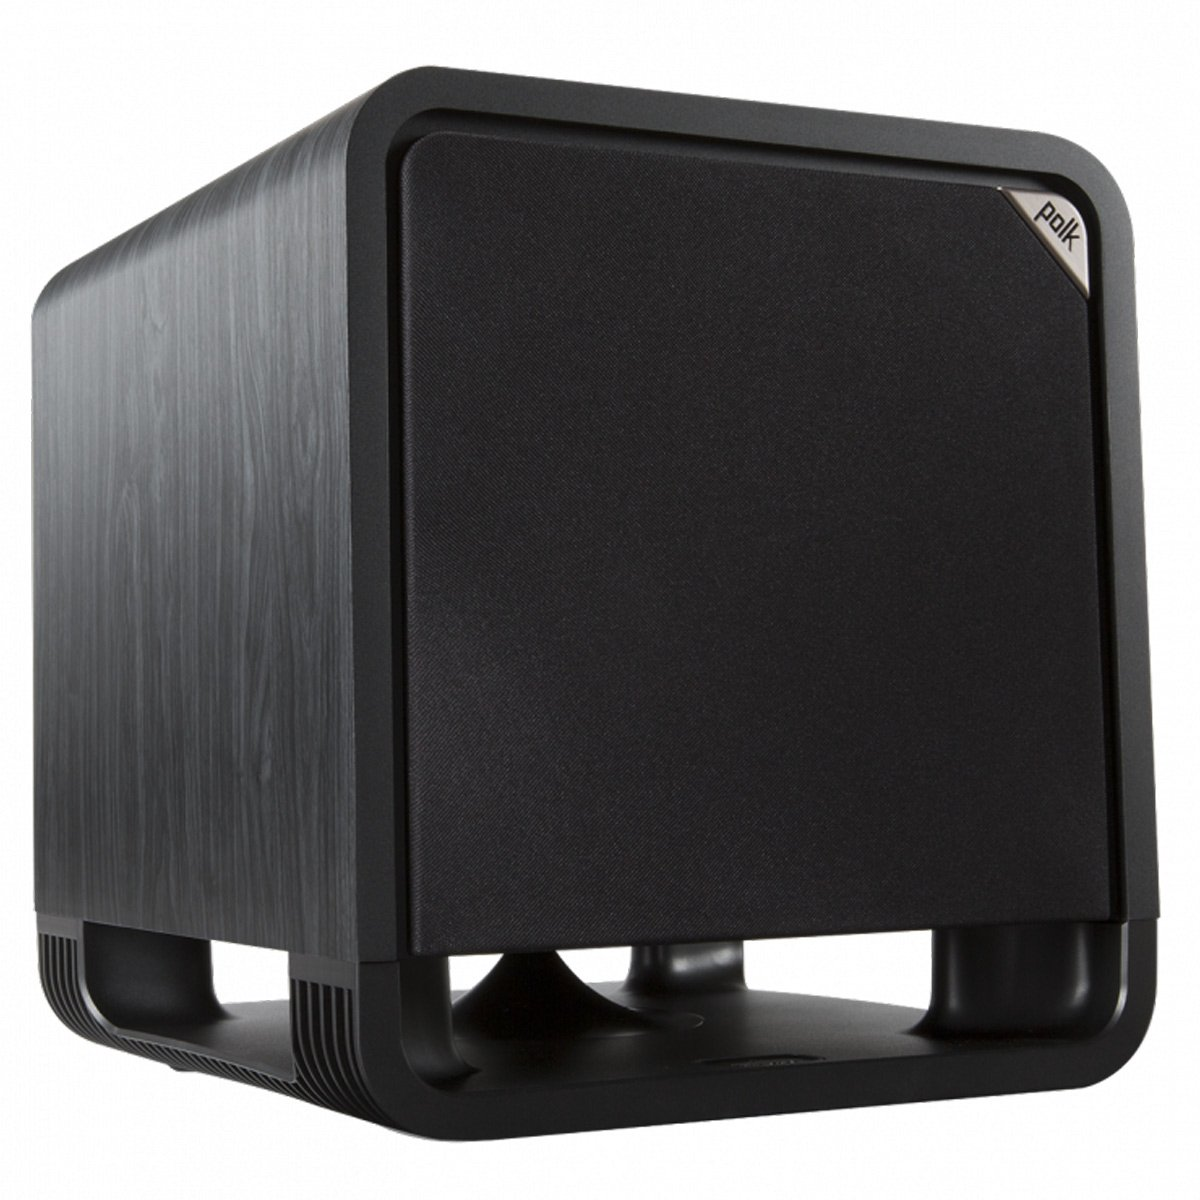 Polk Audio 12 Inches 400 Watts Home Theater Subwoofer Black Walnut (HTS SUB 12 BLK WAL) by Polk Audio